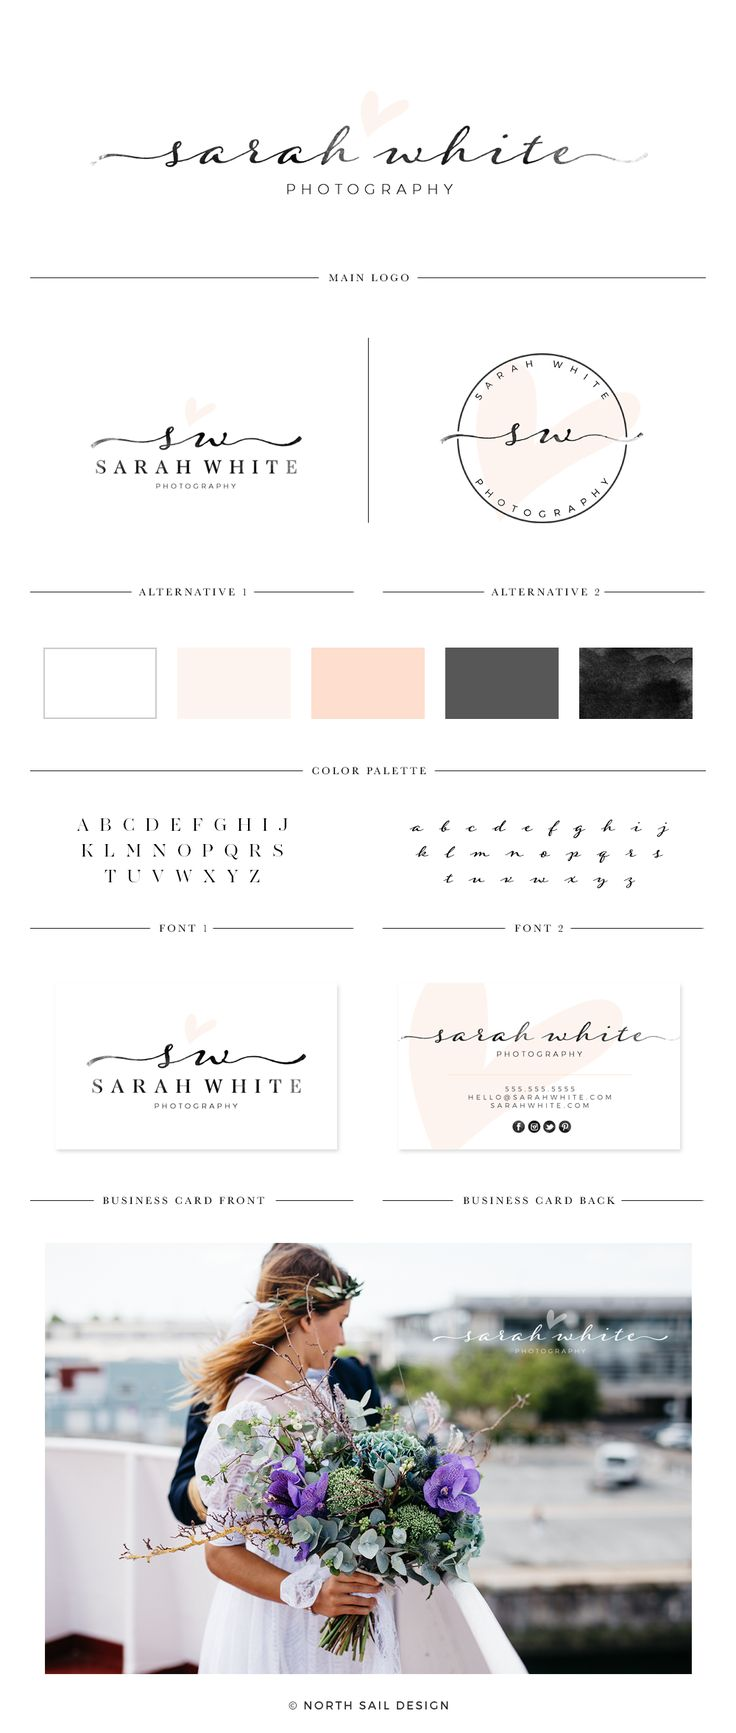 makeup artist cover letters%0A A premade logo is a quick and easy way to achieve a professional looking  brand that